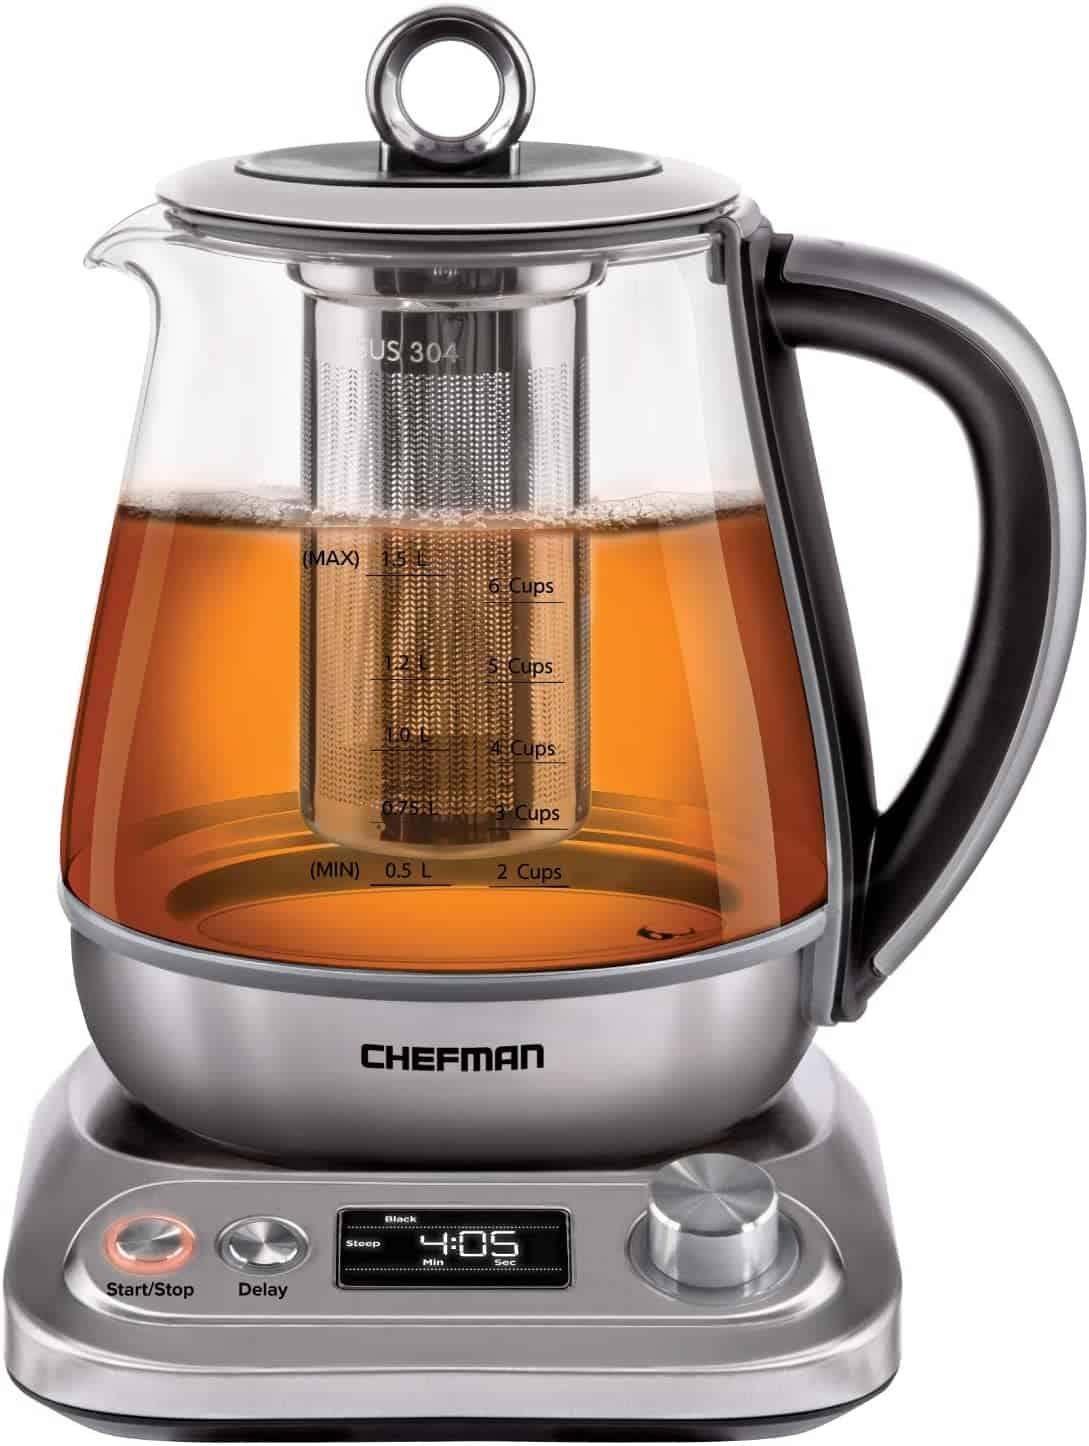 Chefman Digital Electric Glass Kettle 1.5 Liter